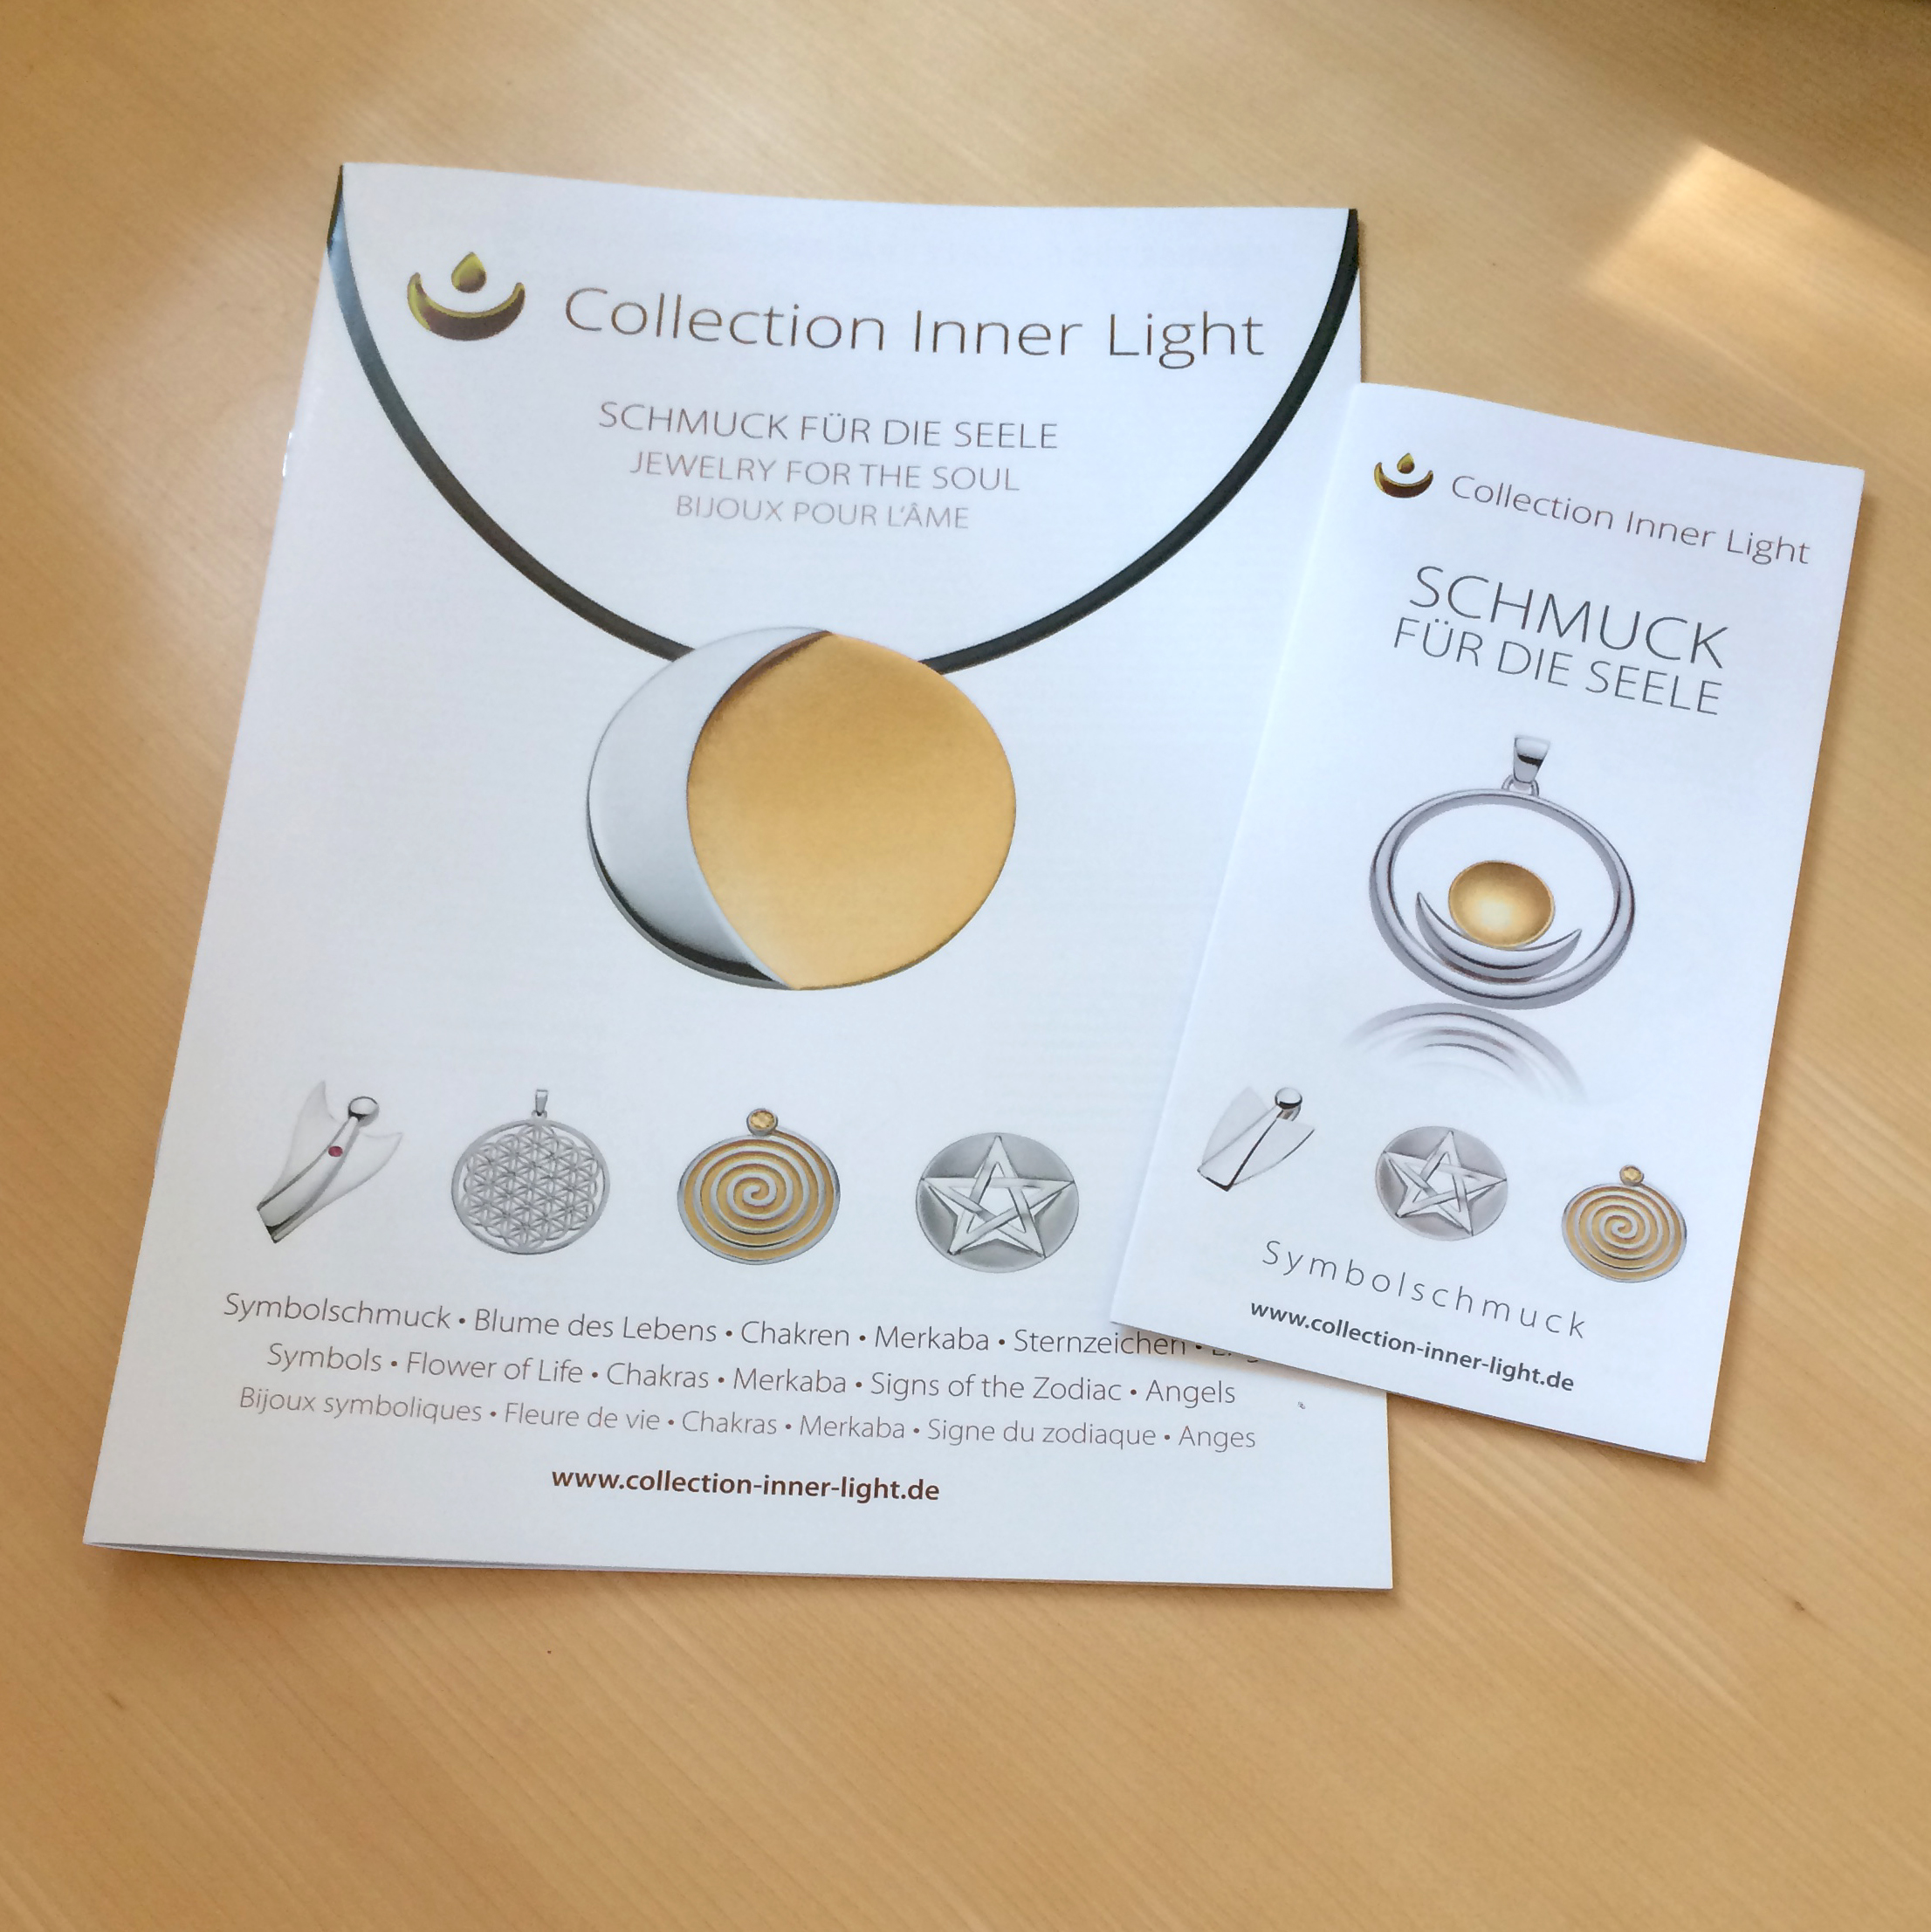 collection inner light katalog flyer werbung anzeige fontfront rossdorf 1